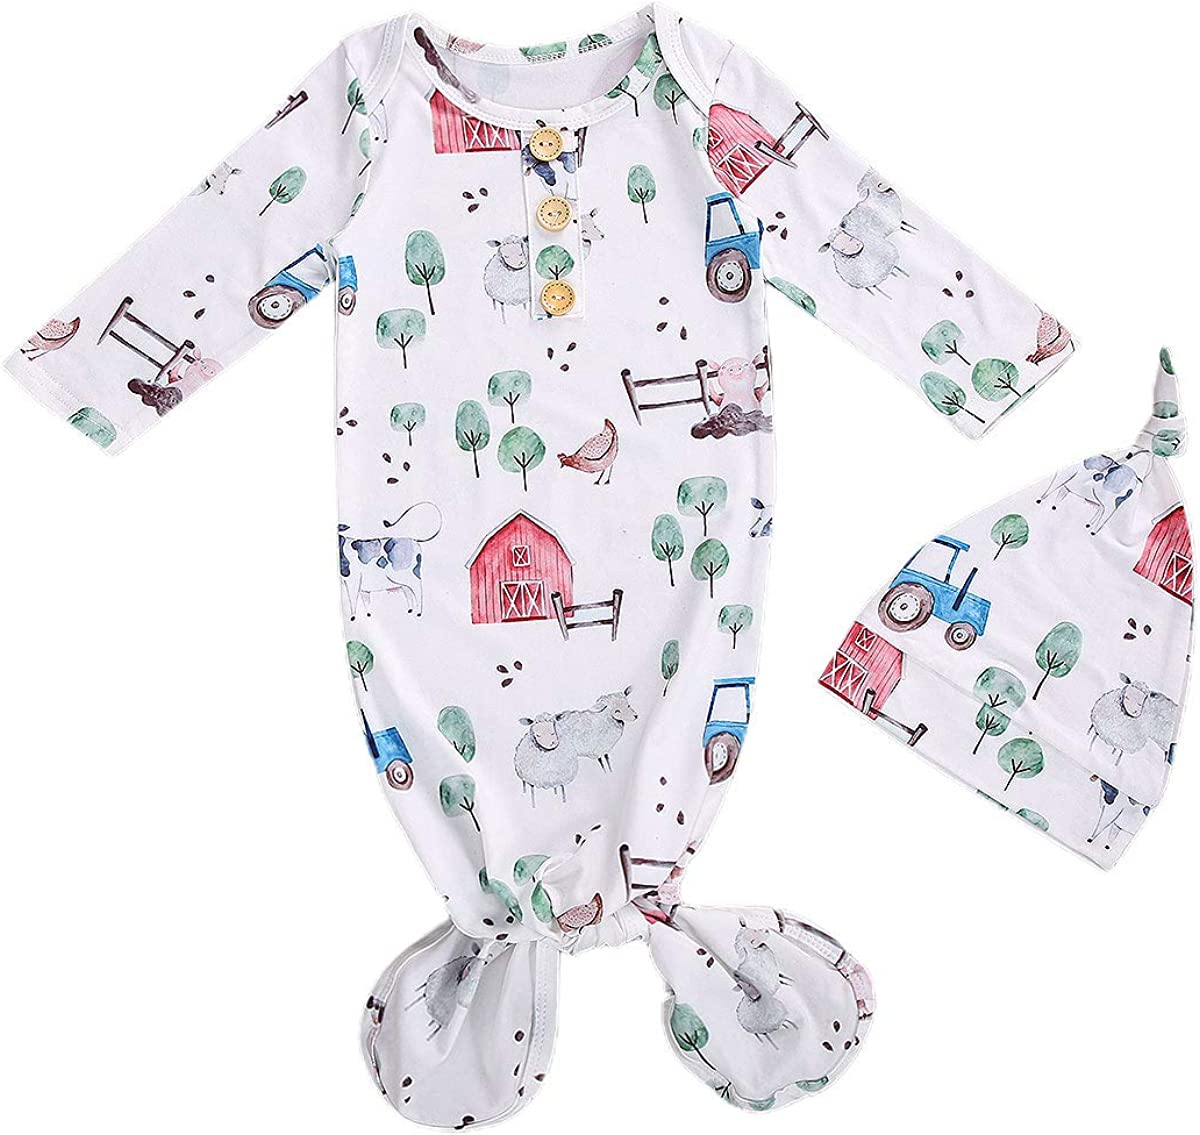 Baby Gown Newborn Girls Boys Floral Knotted Sleeper Soft Knit Cotton Infant Nightgown Set with Headband//Hat 2PCS